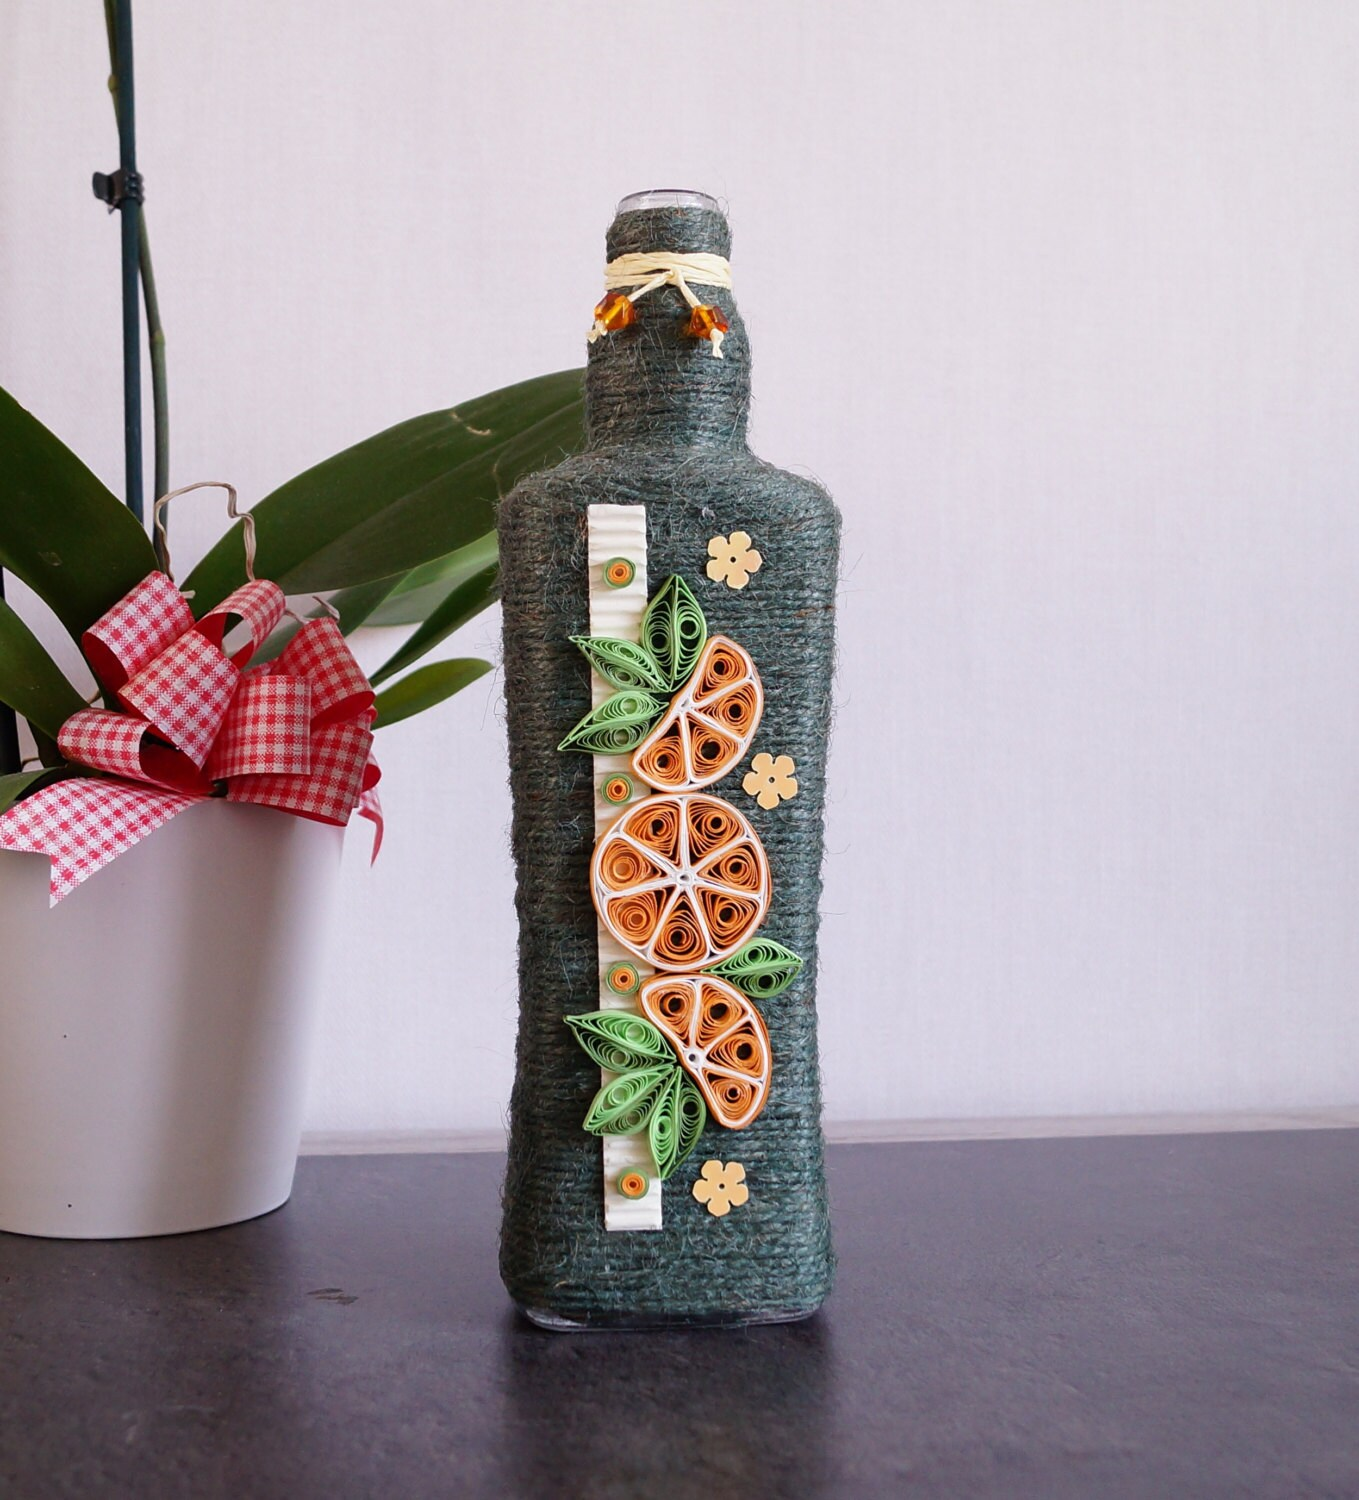 Decorate A Bottle: Wine Bottle Decor Decorated Wine Bottles Home Wine Bottle